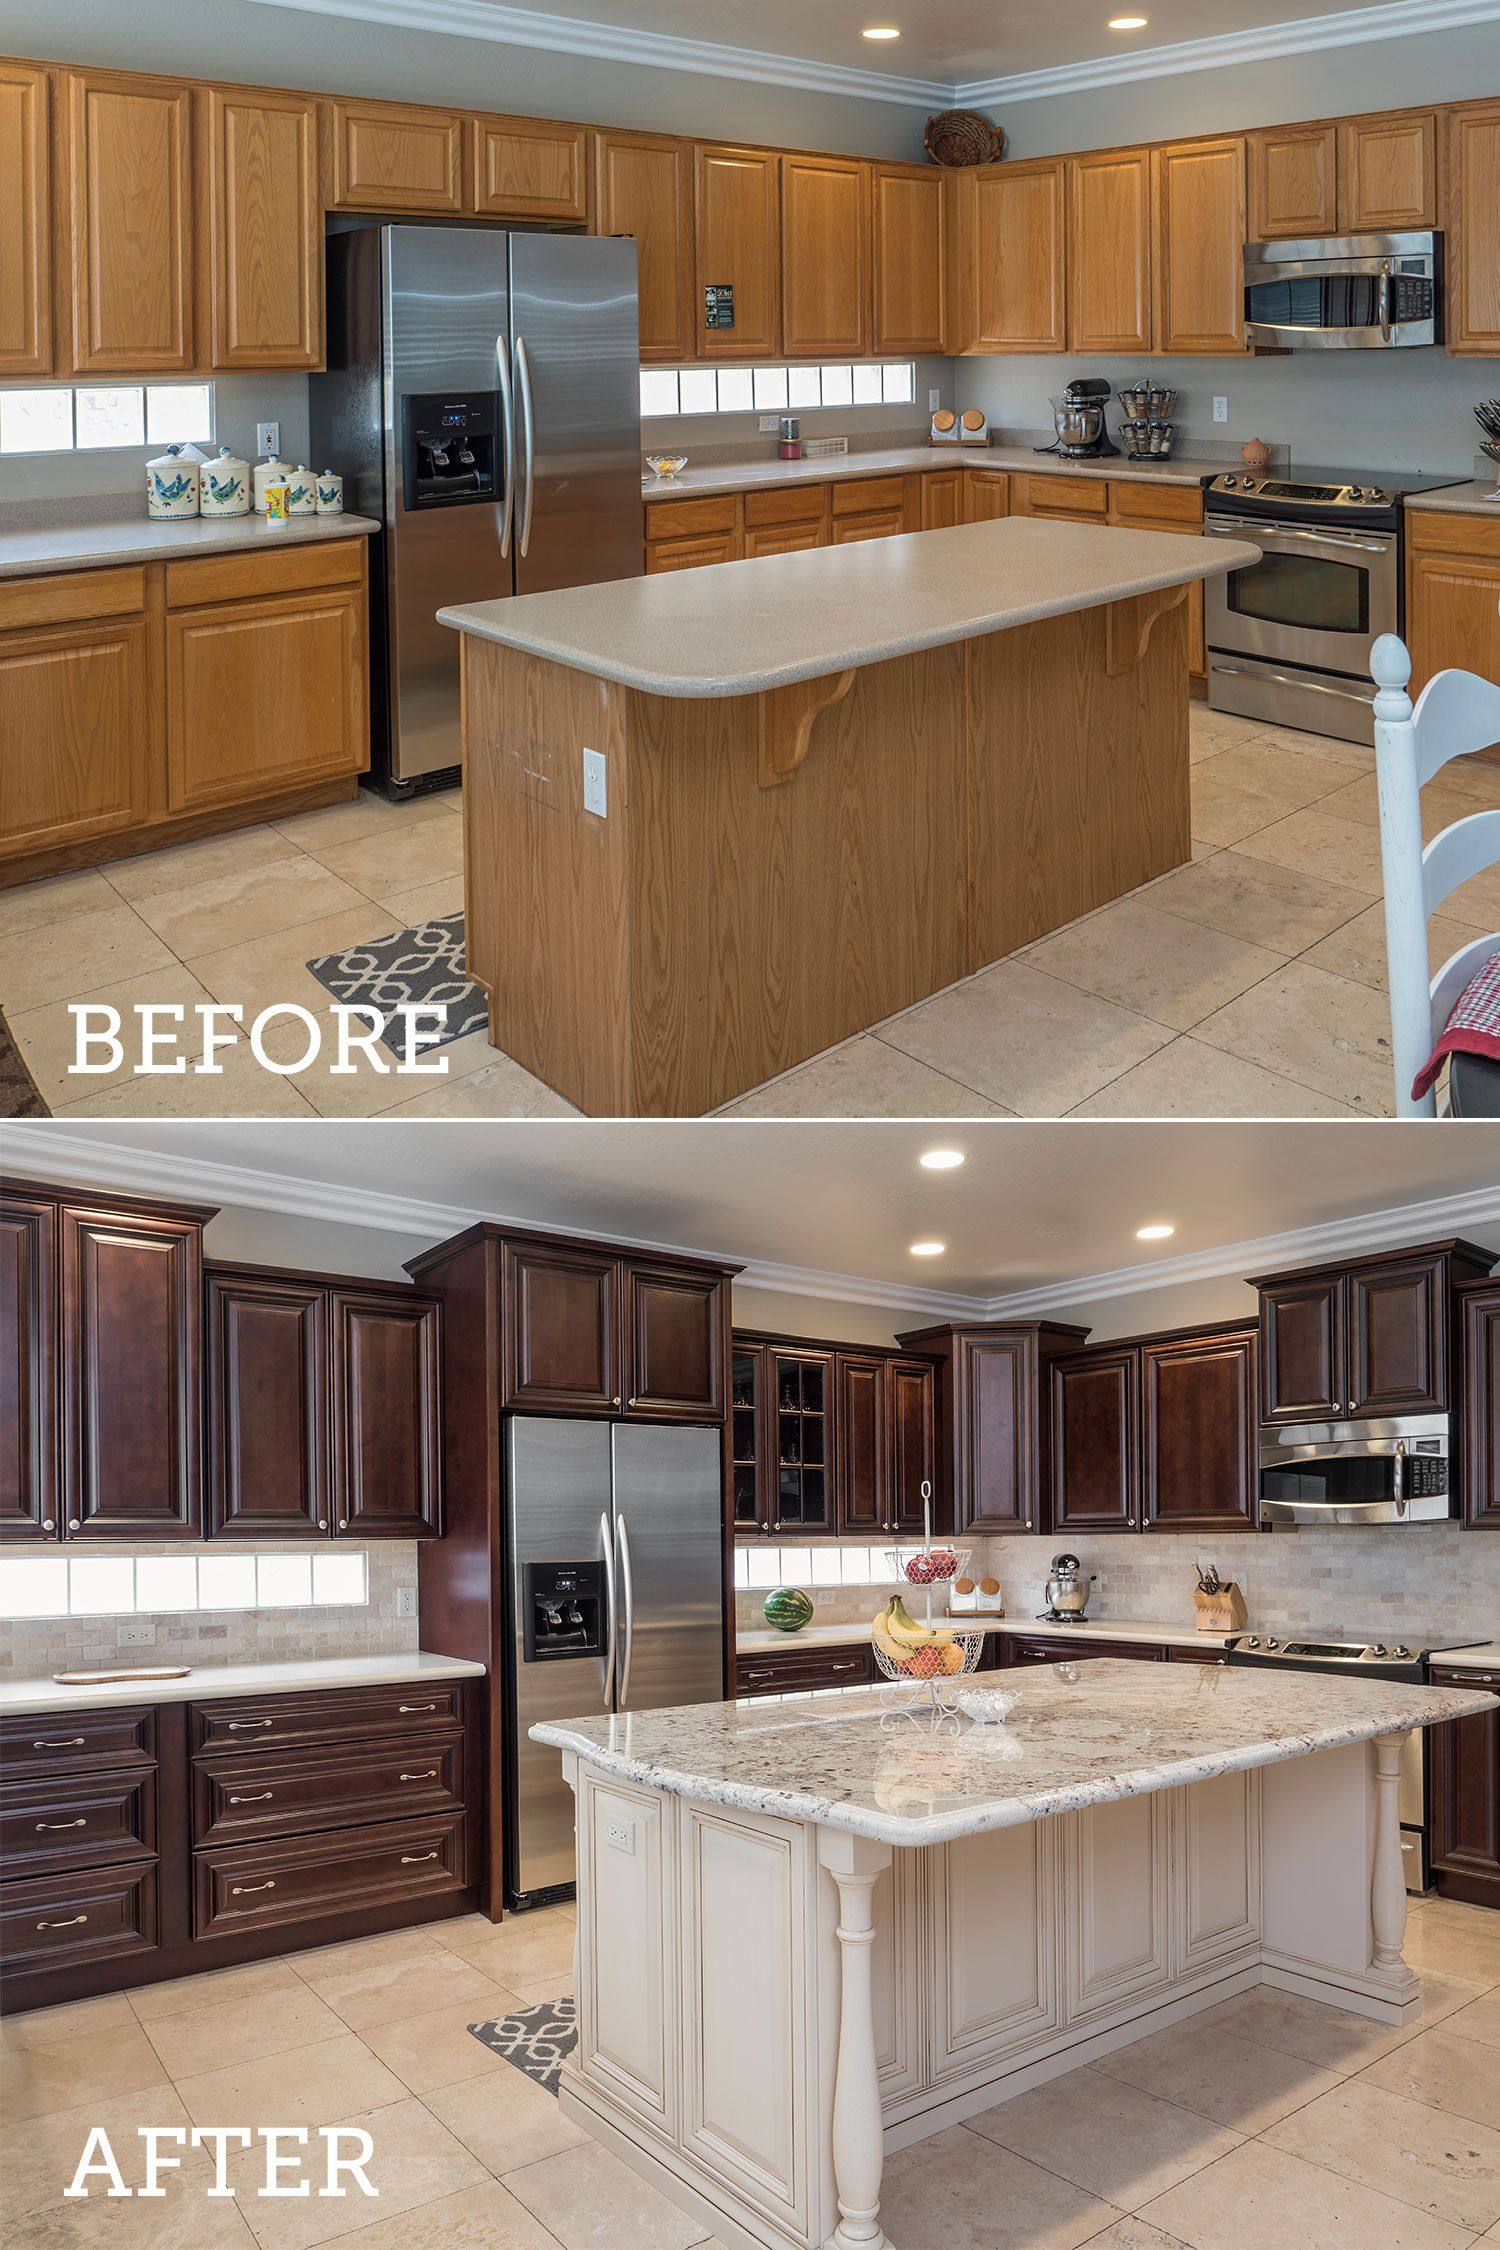 See The Transformation Of This Kitchen From Before And After Our Delaware Peppercorn Cabinets From The Value Series Are Birch Cabinets Kitchen Quality Cabinets